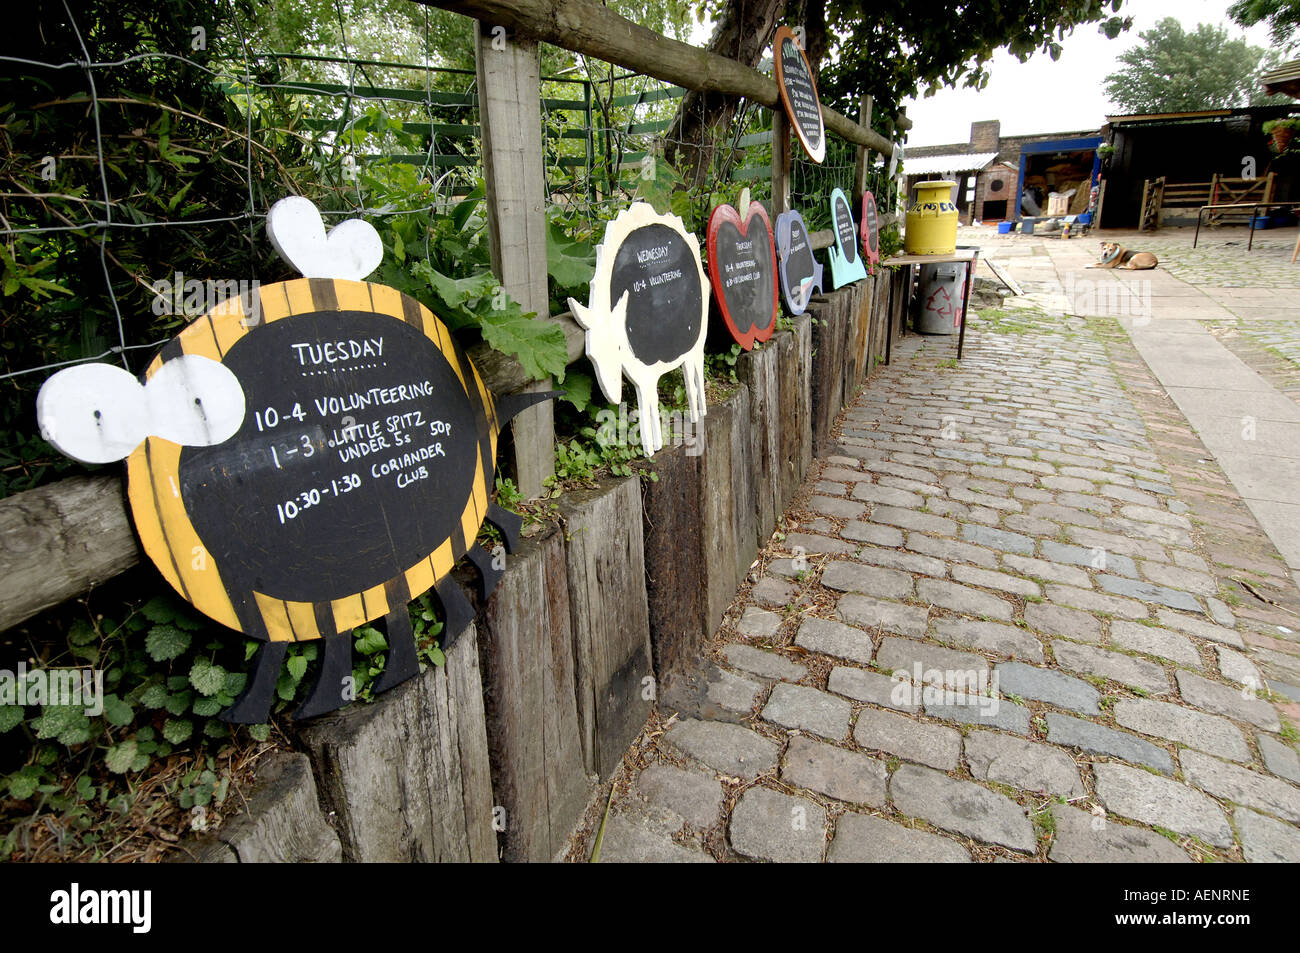 Spitalfields City Farm London UK - Stock Image